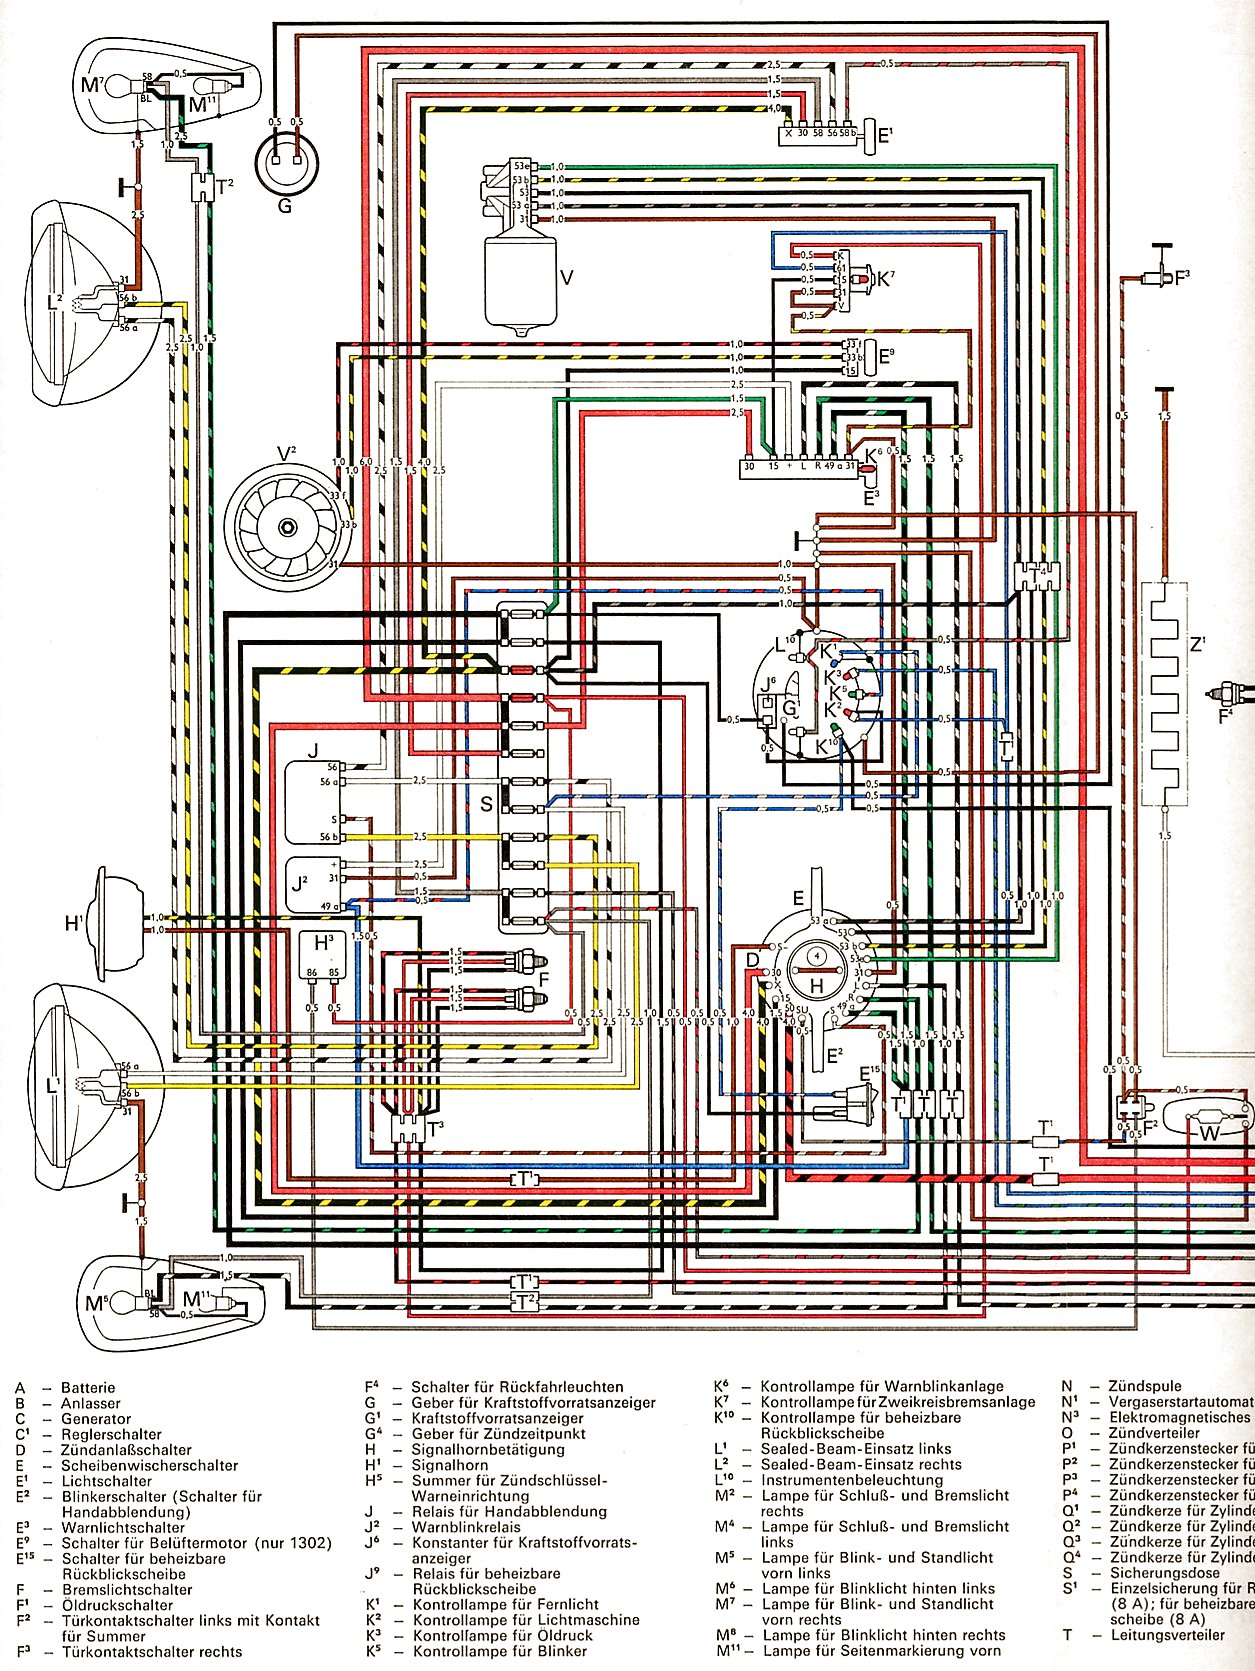 1300_and_1302_USA_from_August_1971 1 wiring help 1974 vw beetle shoptalkforums com vw bug wiring diagram at creativeand.co